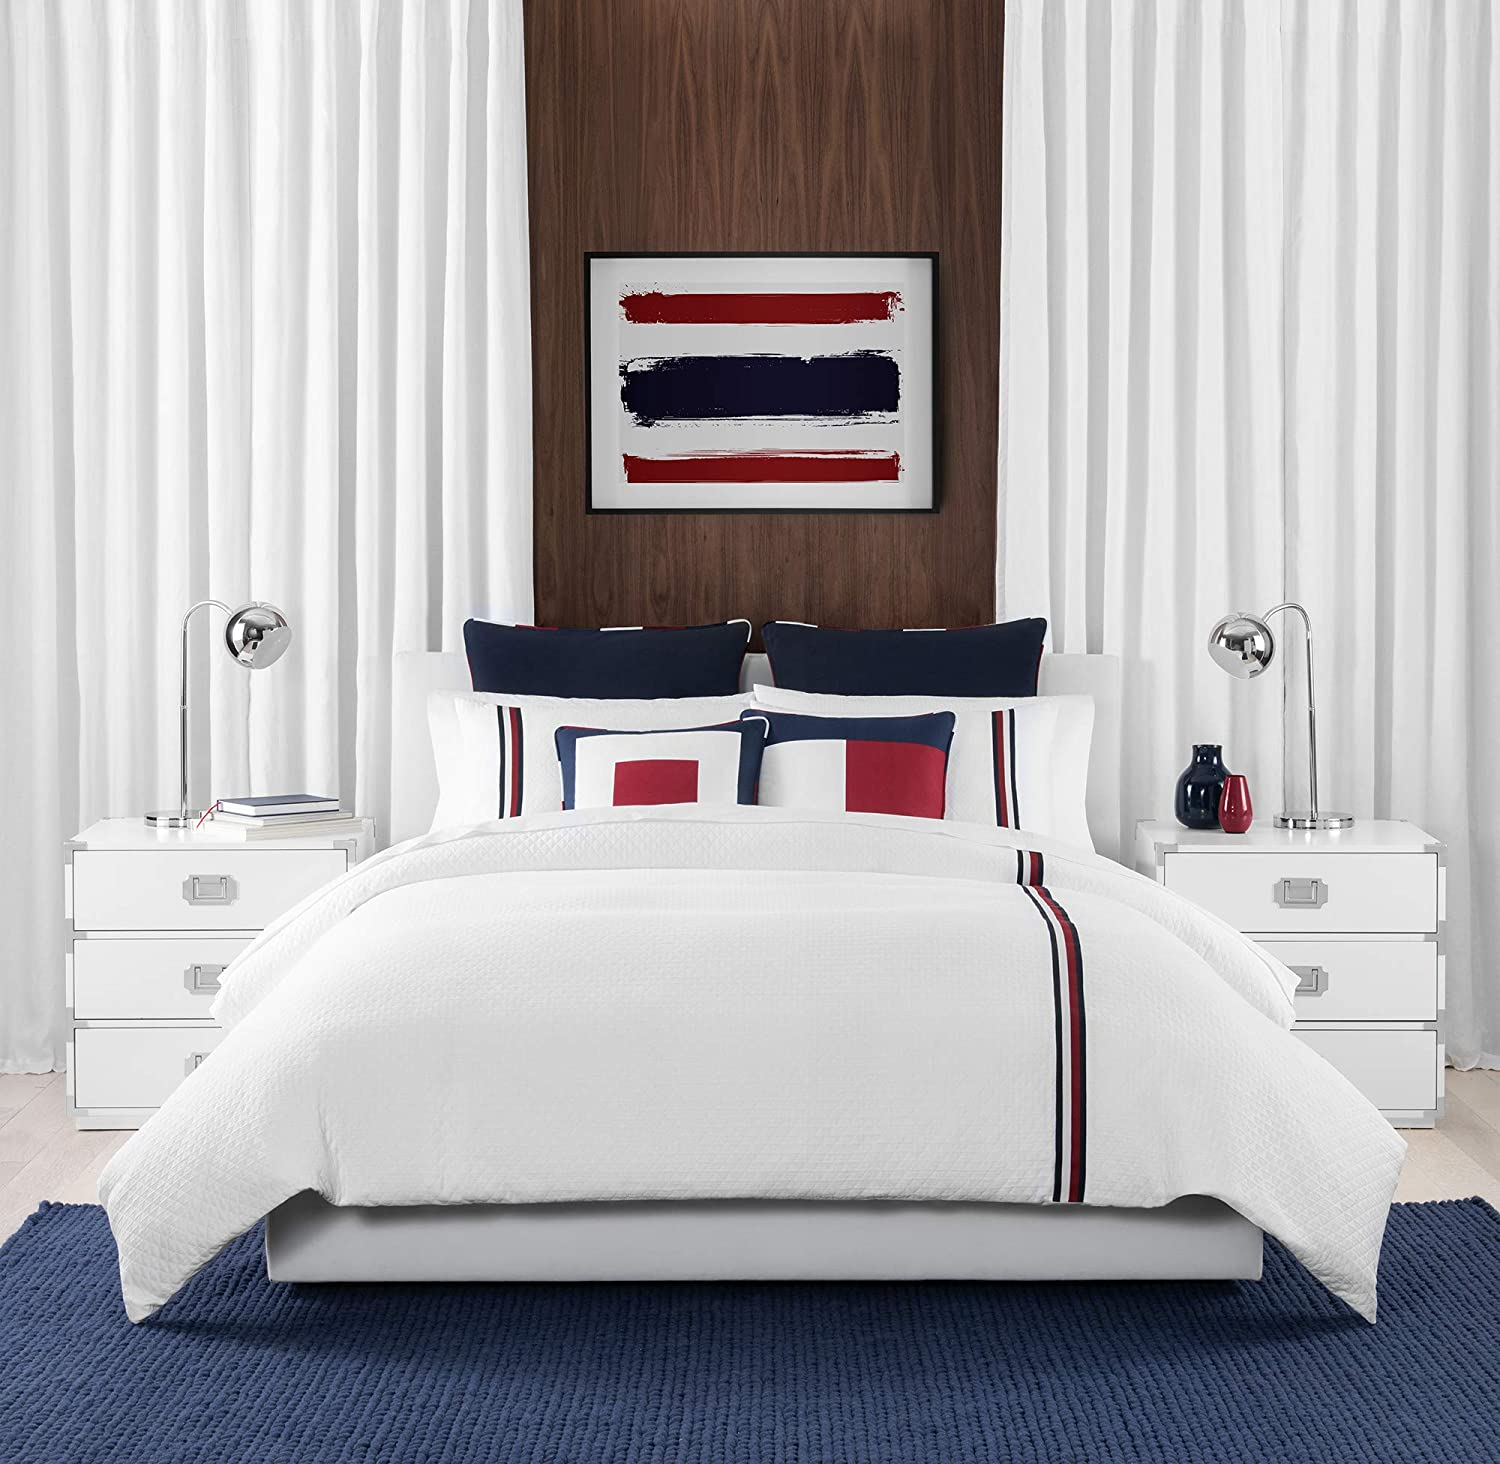 Tommy Hilfiger Signature Stripe Duvet White Cover online shopping Set safety Twin